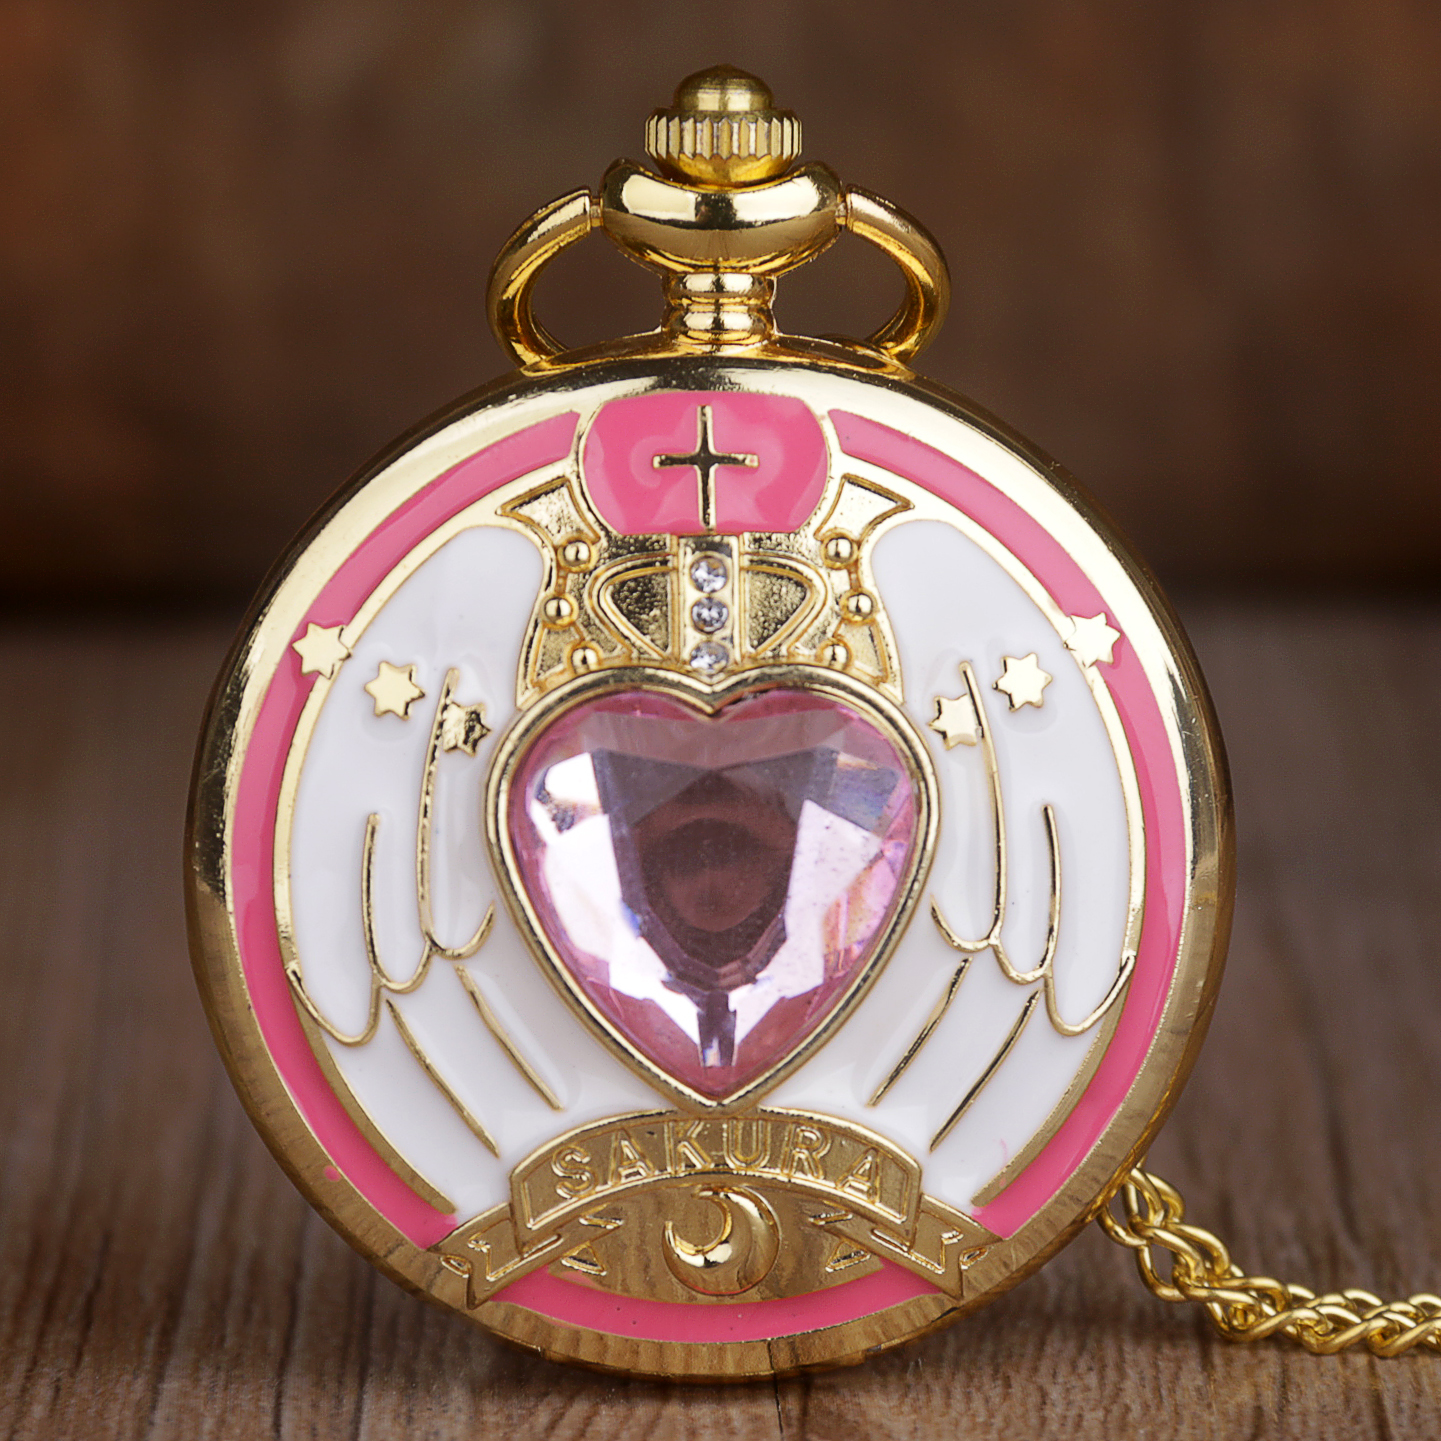 Pink Pocket Watches For Girls Cute Cartoon Design Fashion Quartz Fob Watch Ladies Best Gifts With Chain